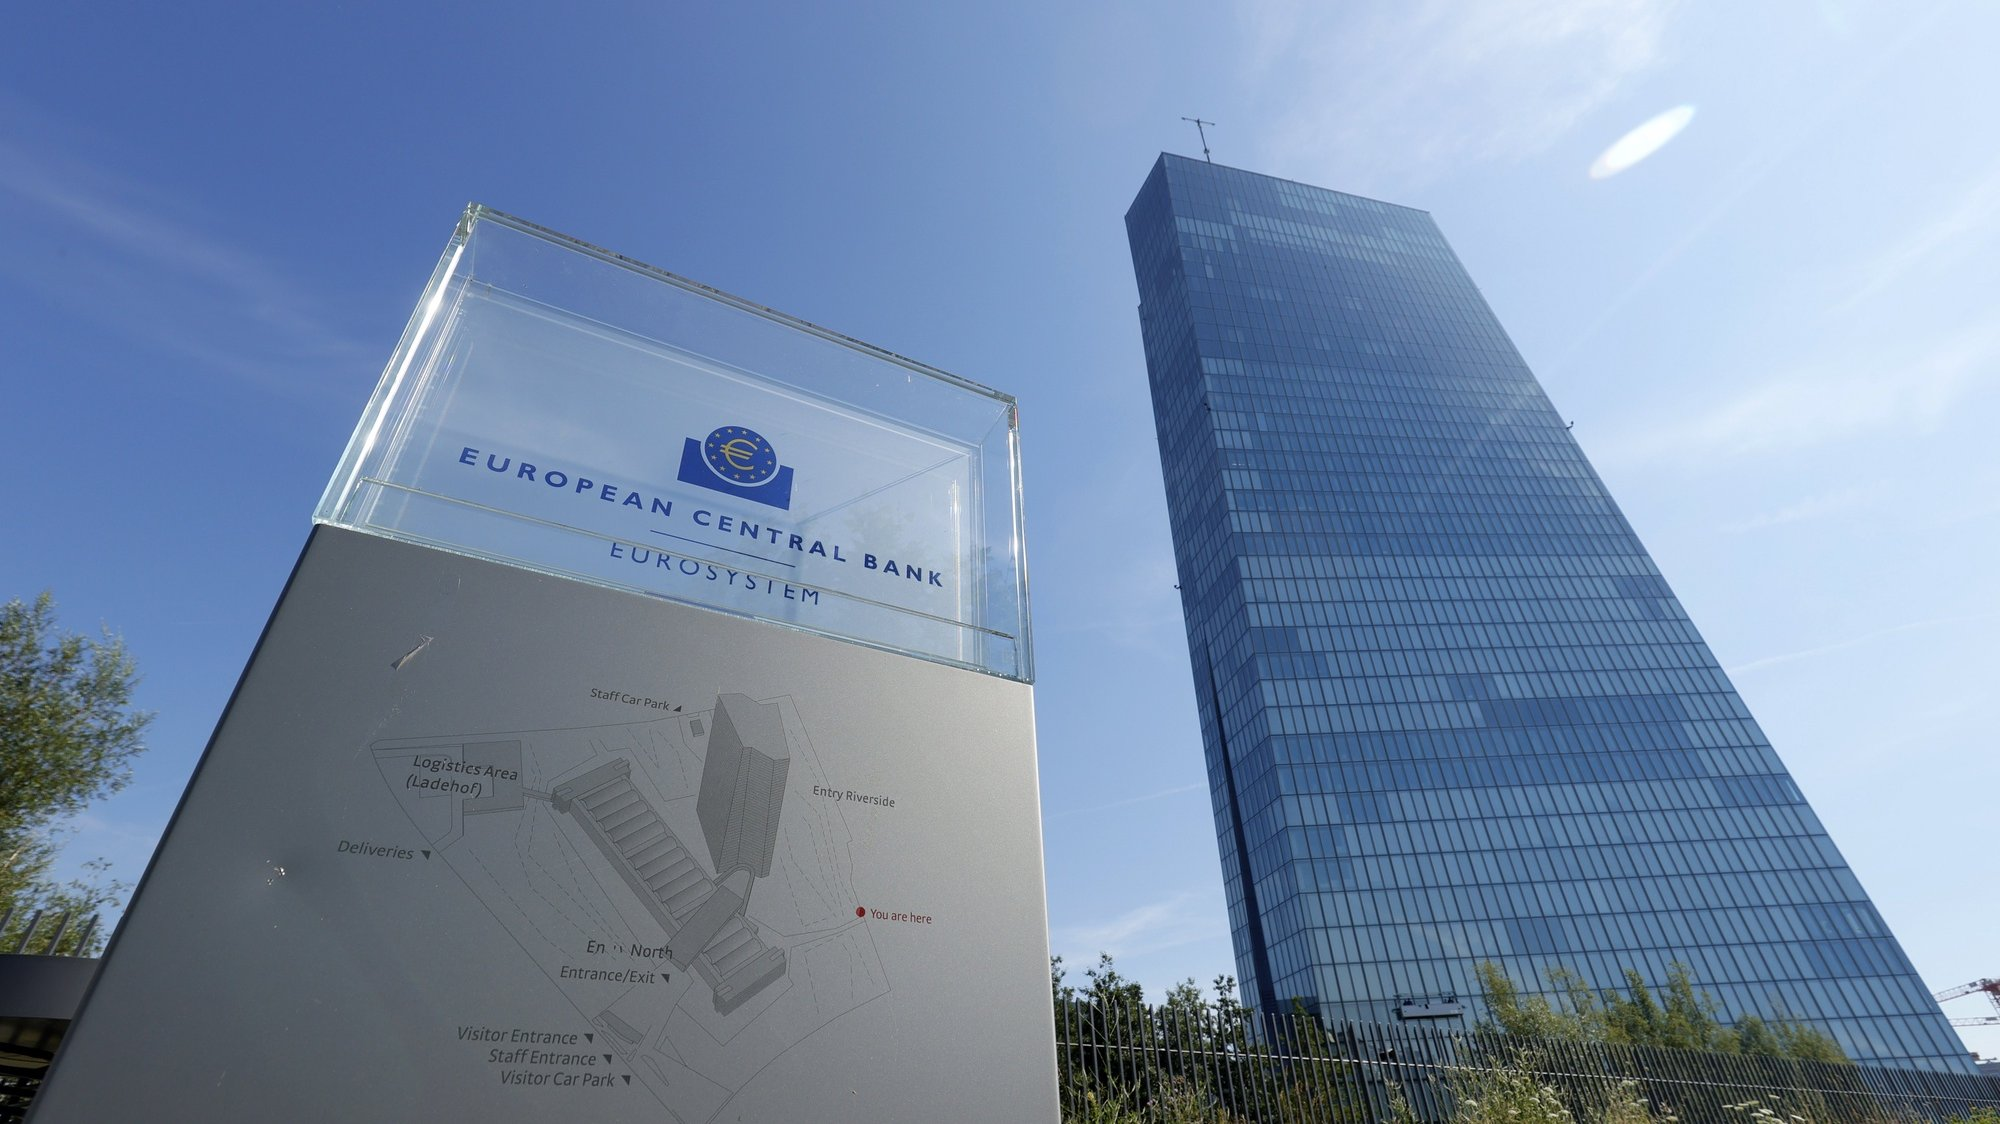 epa08545436 A general view of a sign in front of the building of the European Central Bank (ECB) in Frankfurt am Main, Germany, 14 July 2020.  EPA/RONALD WITTEK